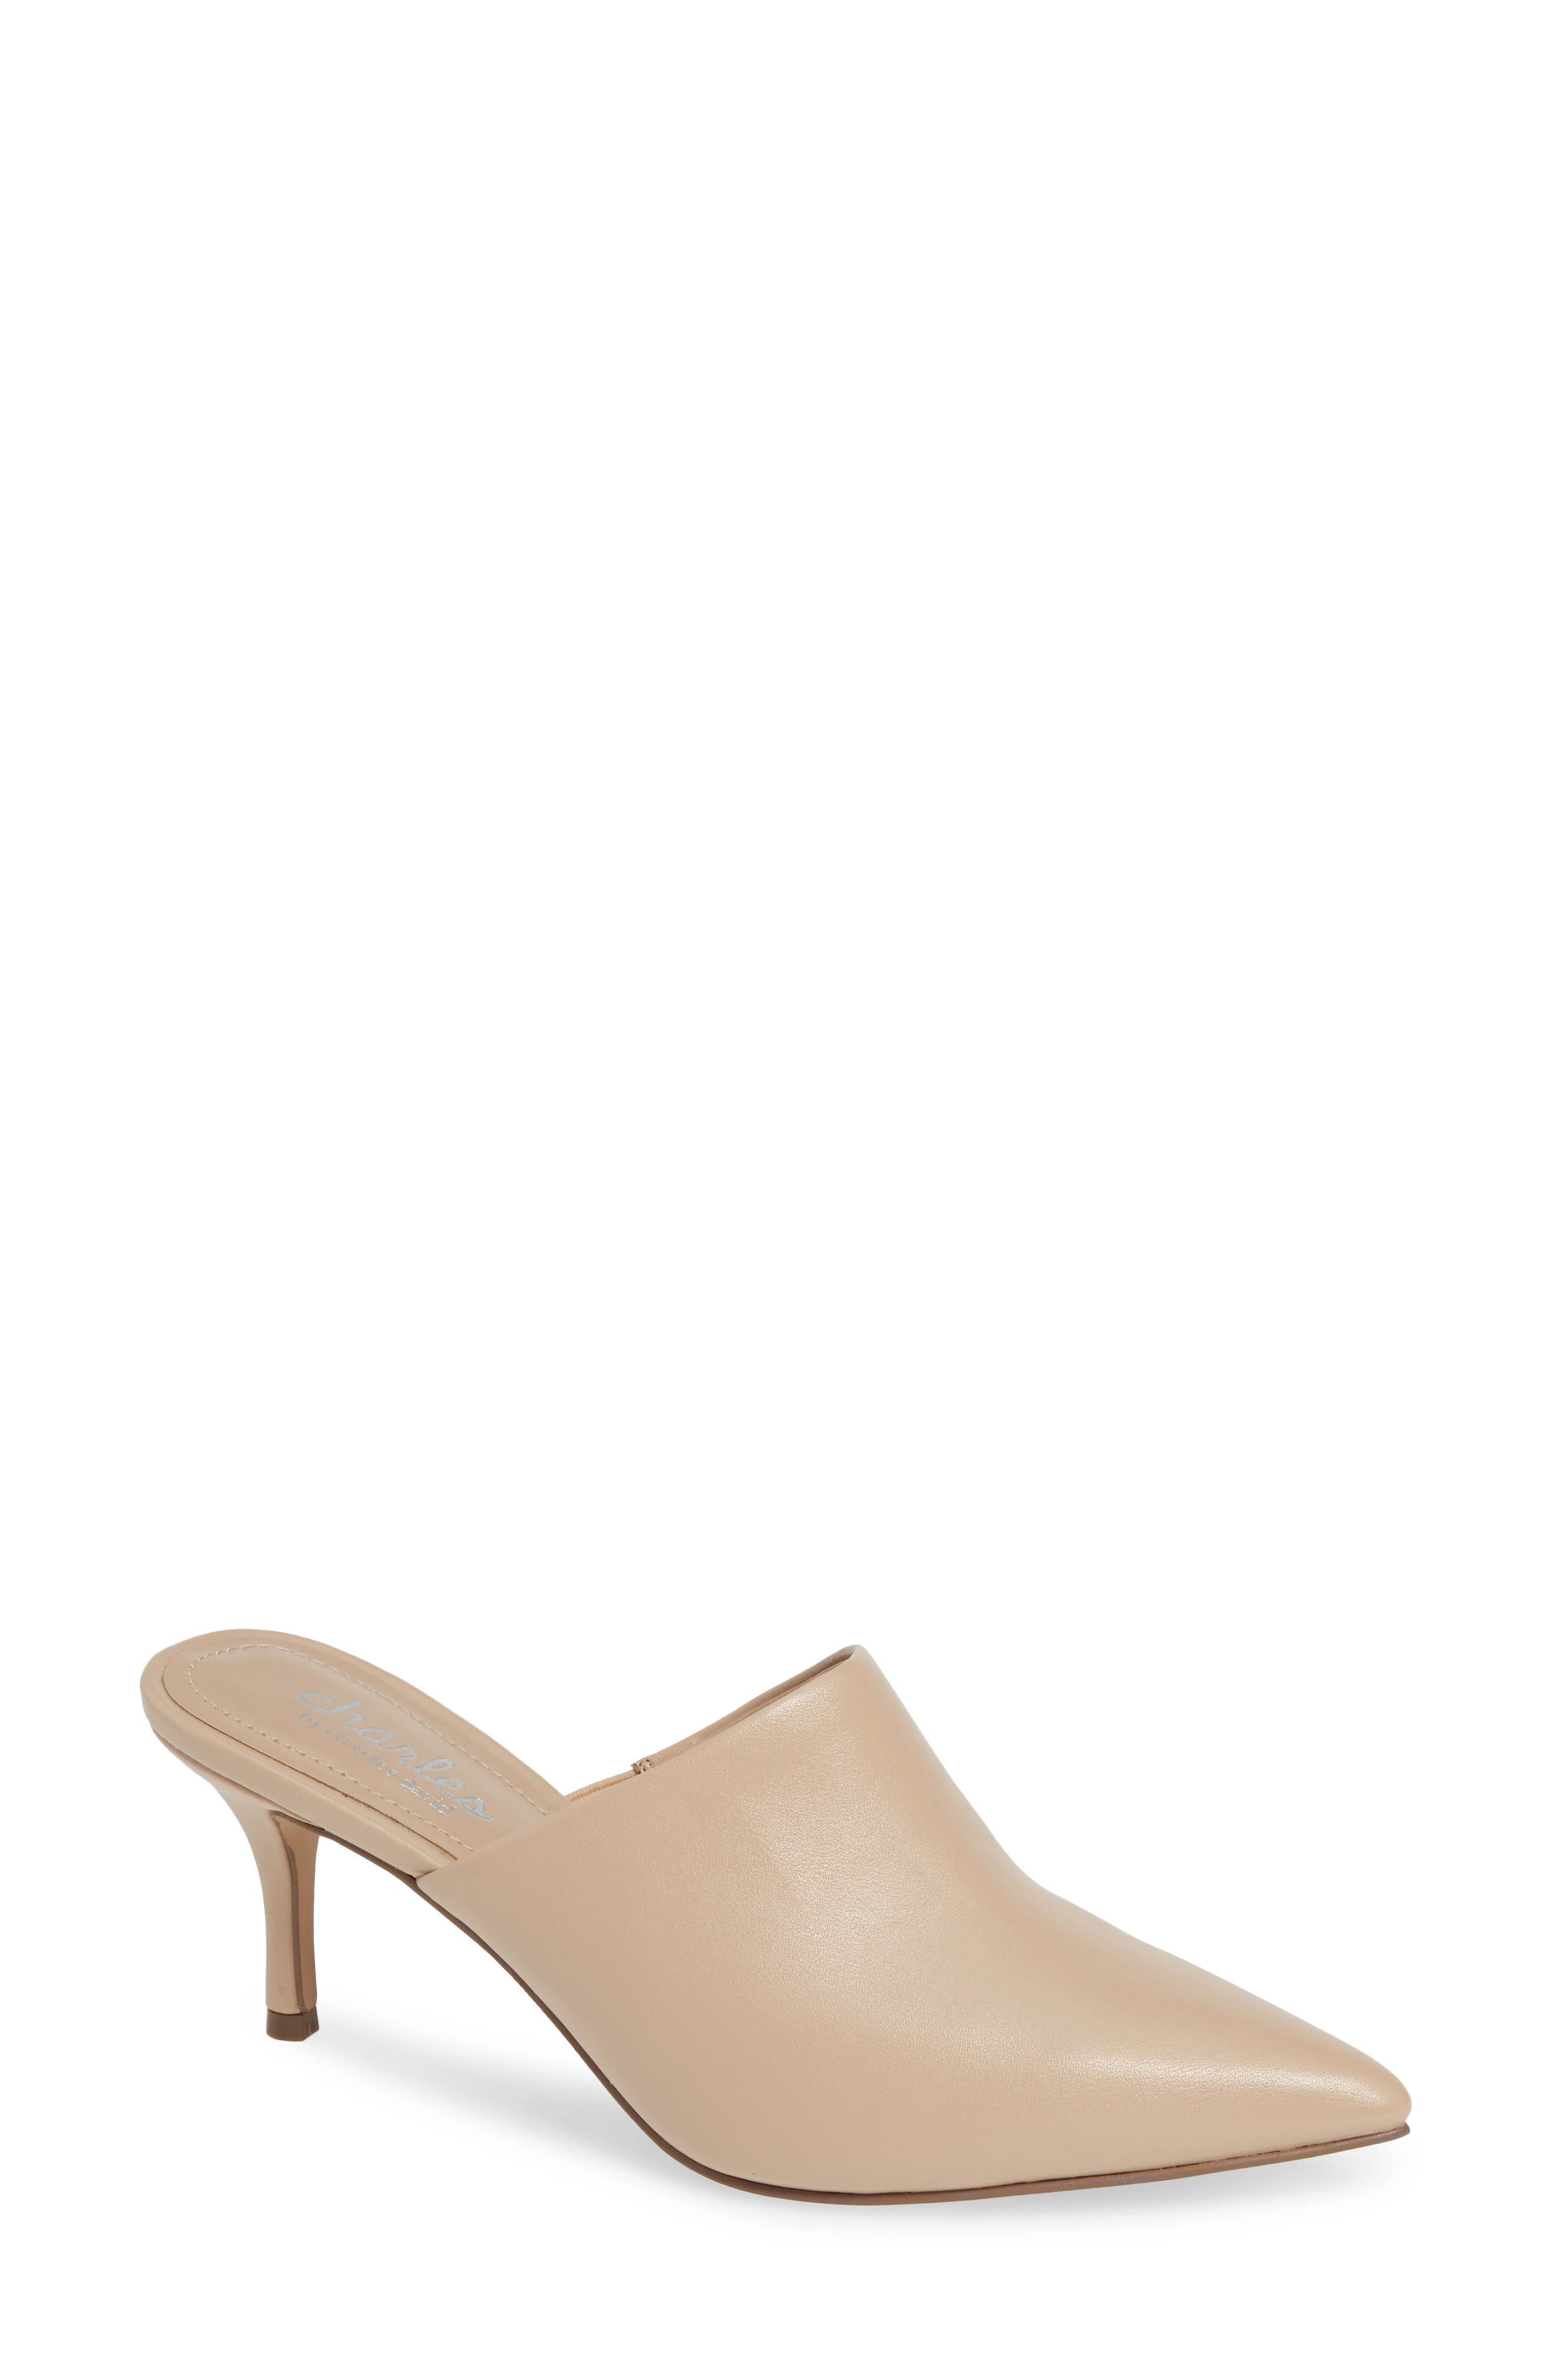 4ee0acd5da35 Charles By Charles David Abree Pointed-Toe Mules In Nude